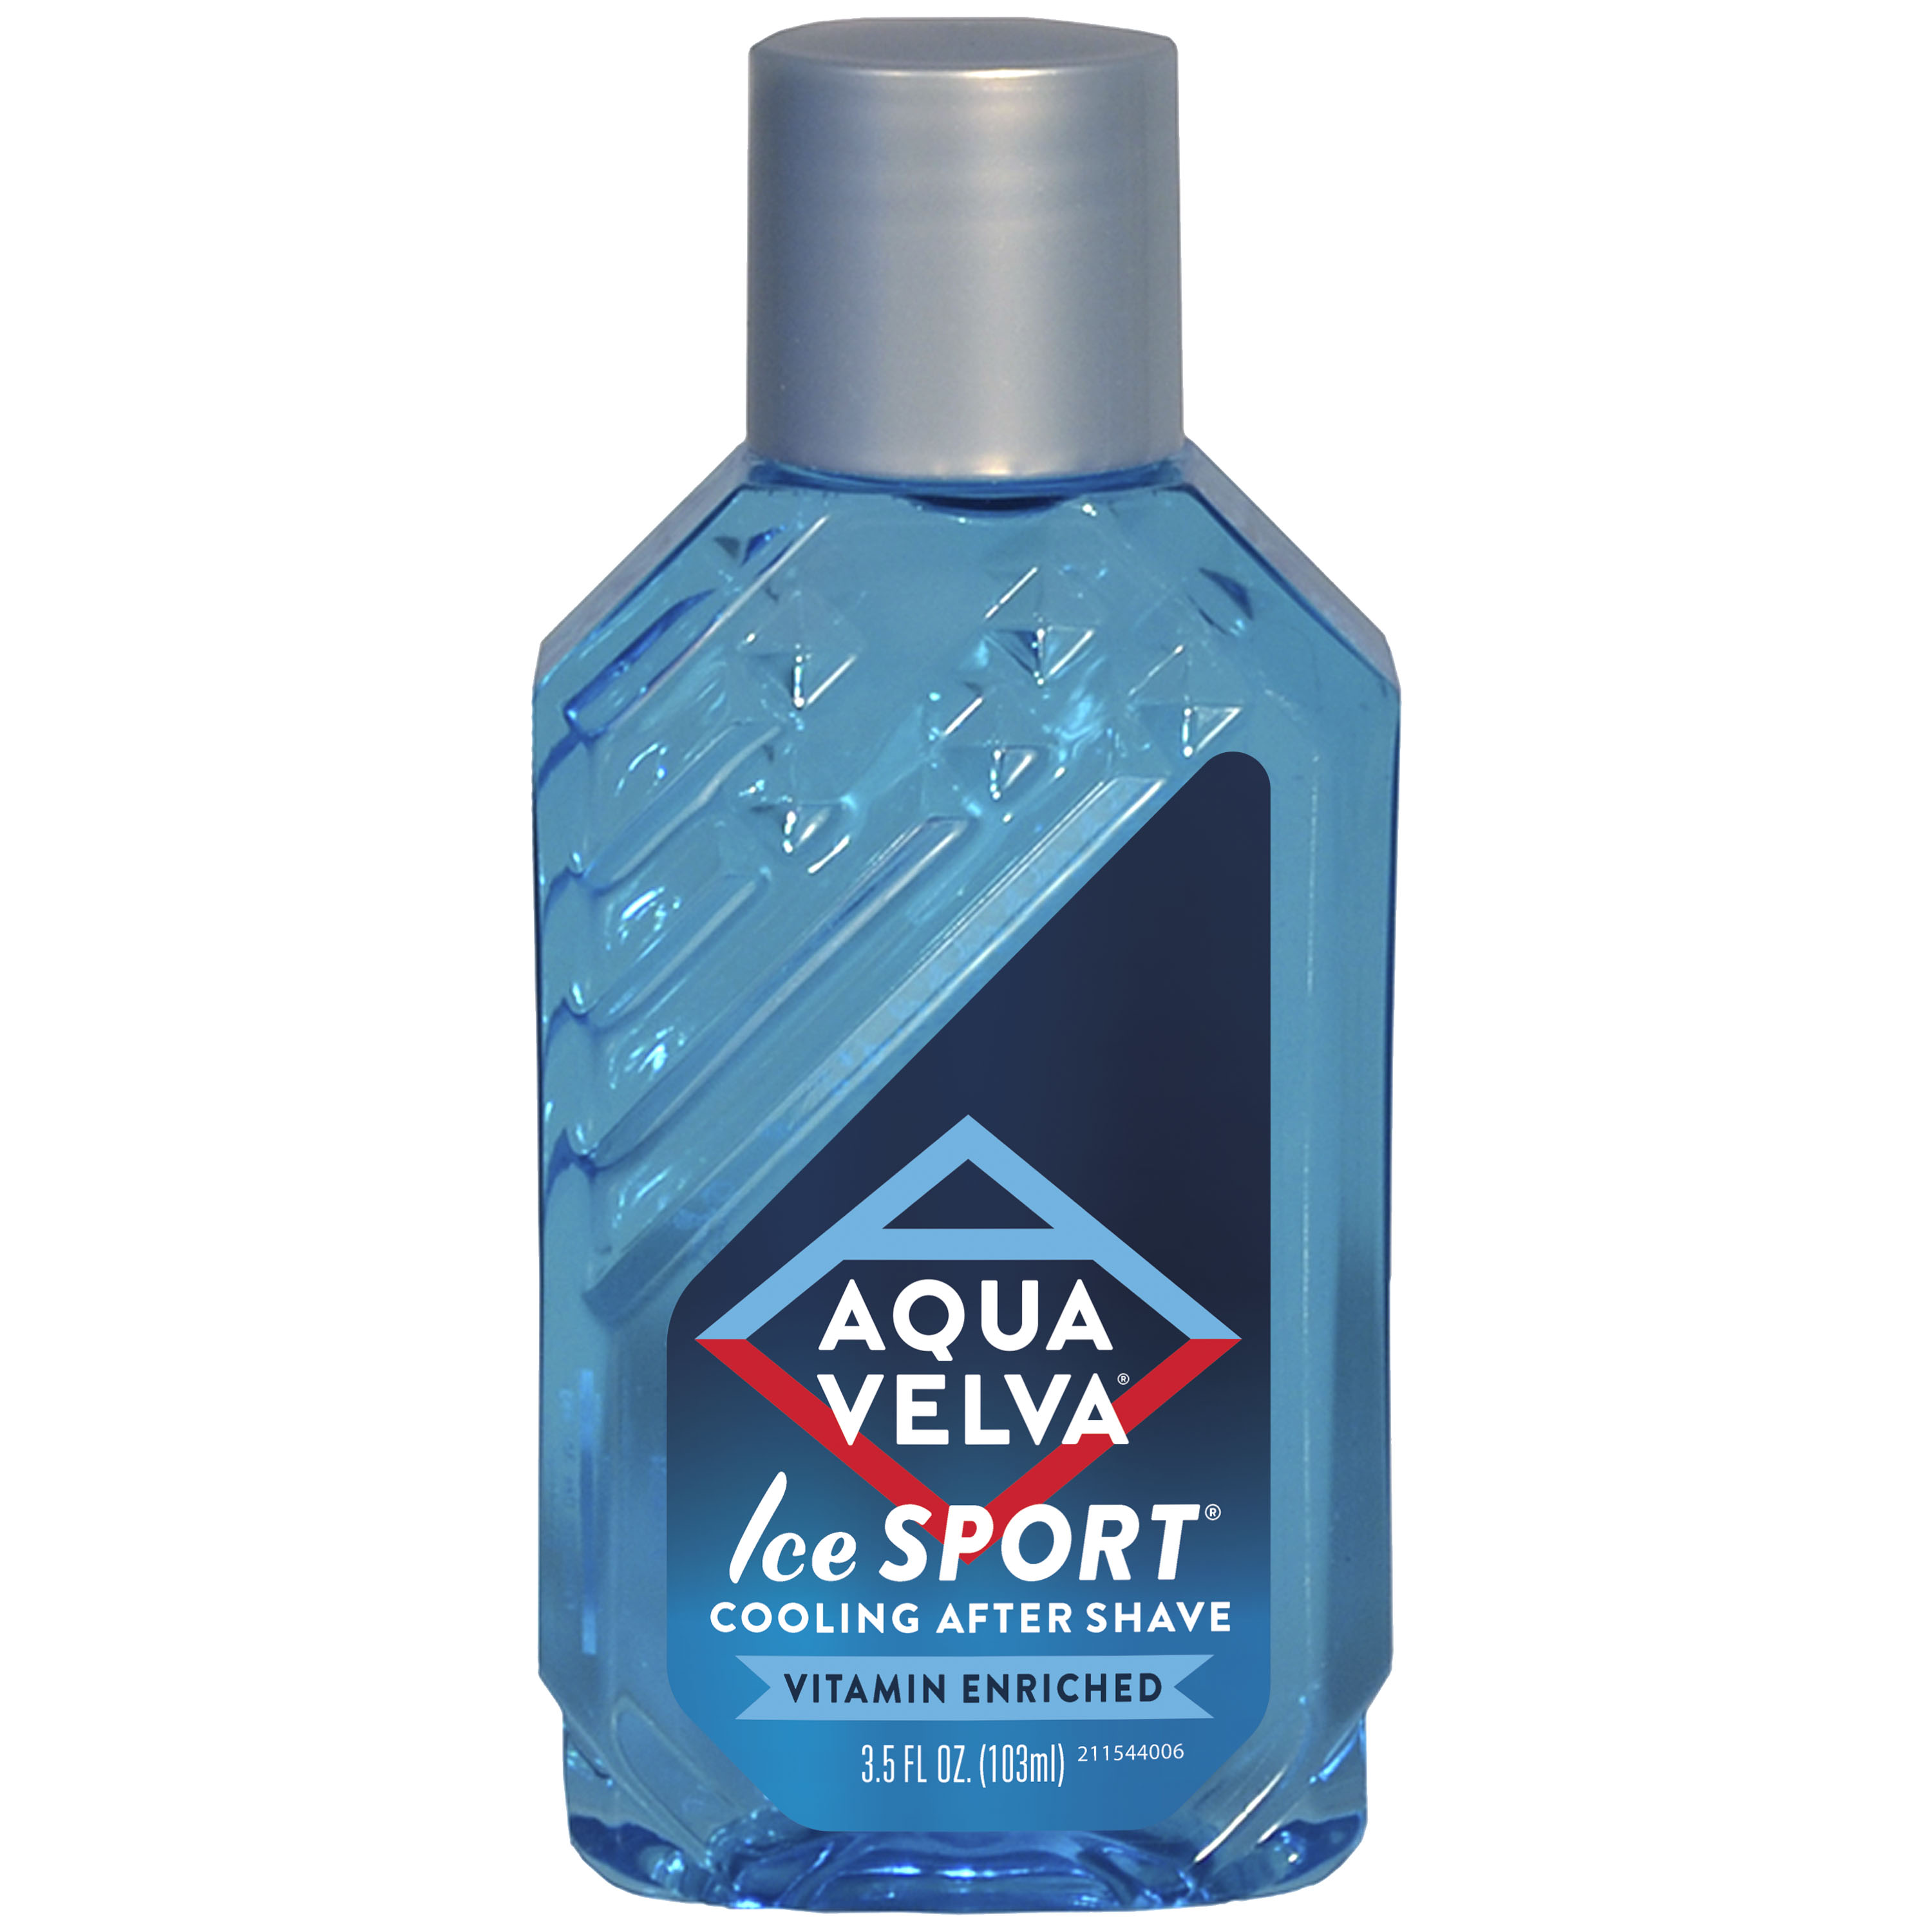 Aqua Velva After Shave, Ice Sport Scent that Cools Skin and is Vitamin Enriched, 3.5 Fluid Ounce Bottle